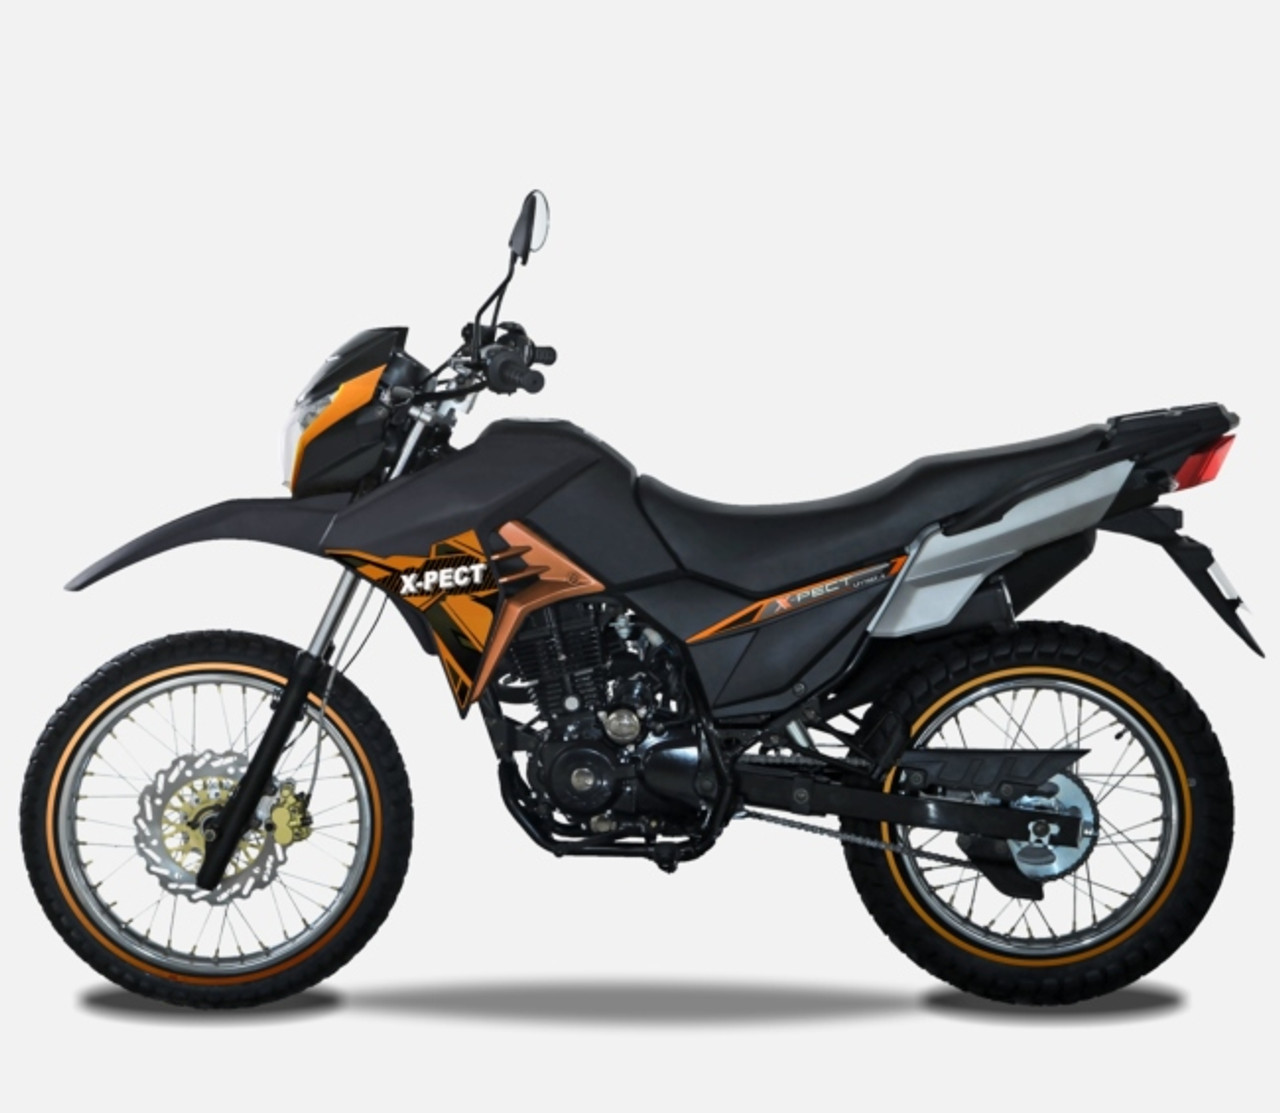 LIFAN X-PECT 200 ELECTRONIC FUEL INJECTION, AIR COOLED, 5 SPEED/MANUAL